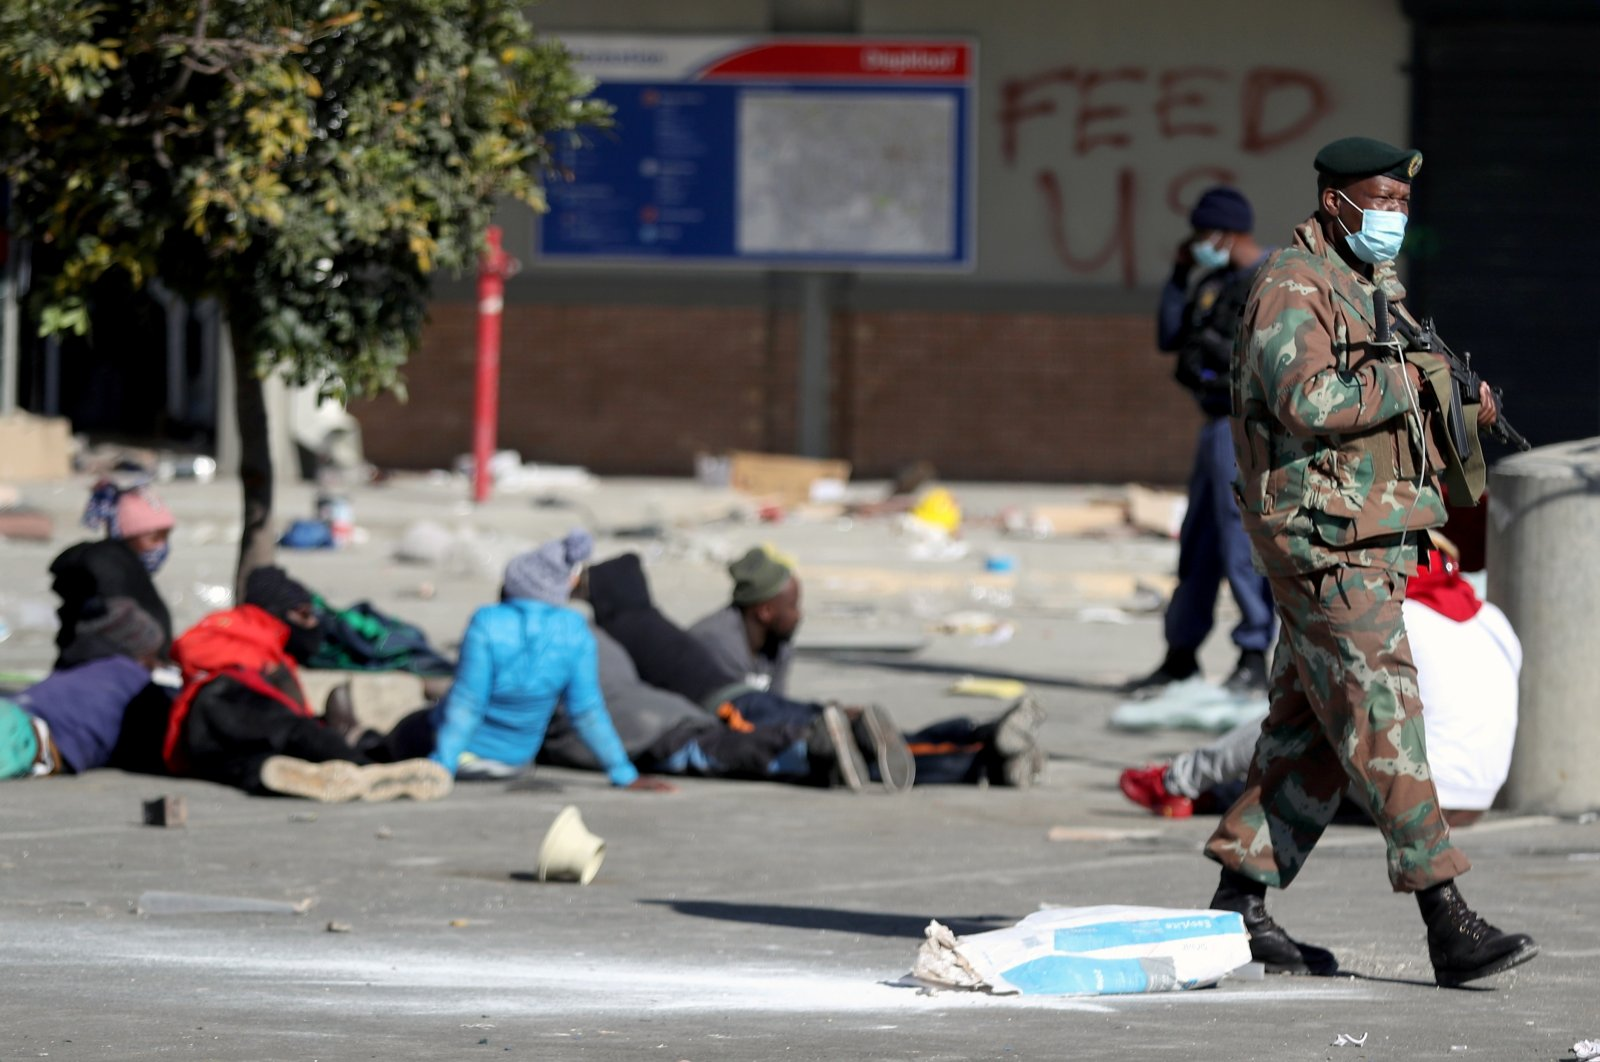 A member of the military keeps guard next to suspected looters outside Diepkloof mall as the country deploys army to quell unrest linked to jailing of former President Jacob Zuma, in Soweto, South Africa, July 13, 2021. (Reuters Photo)